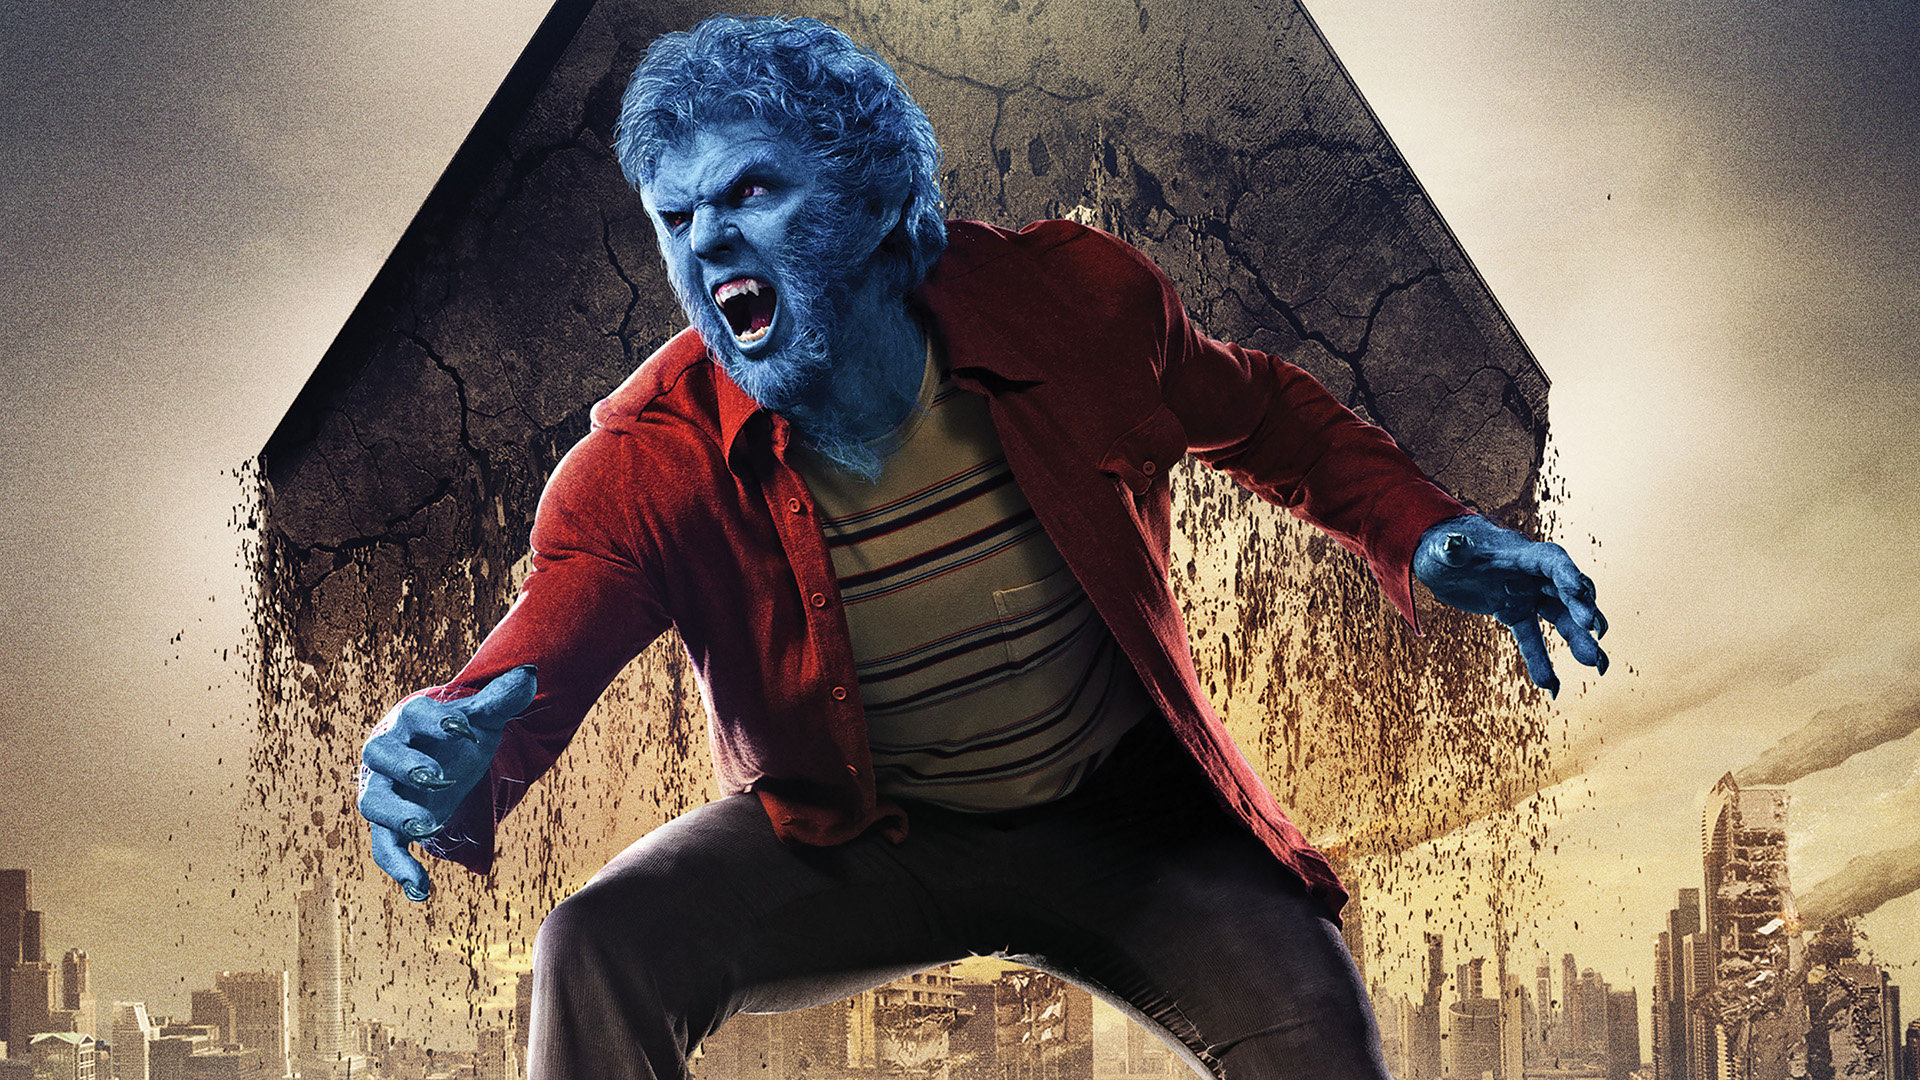 Download 1080p X-Men: Days Of Future Past PC wallpaper ID:8442 for free